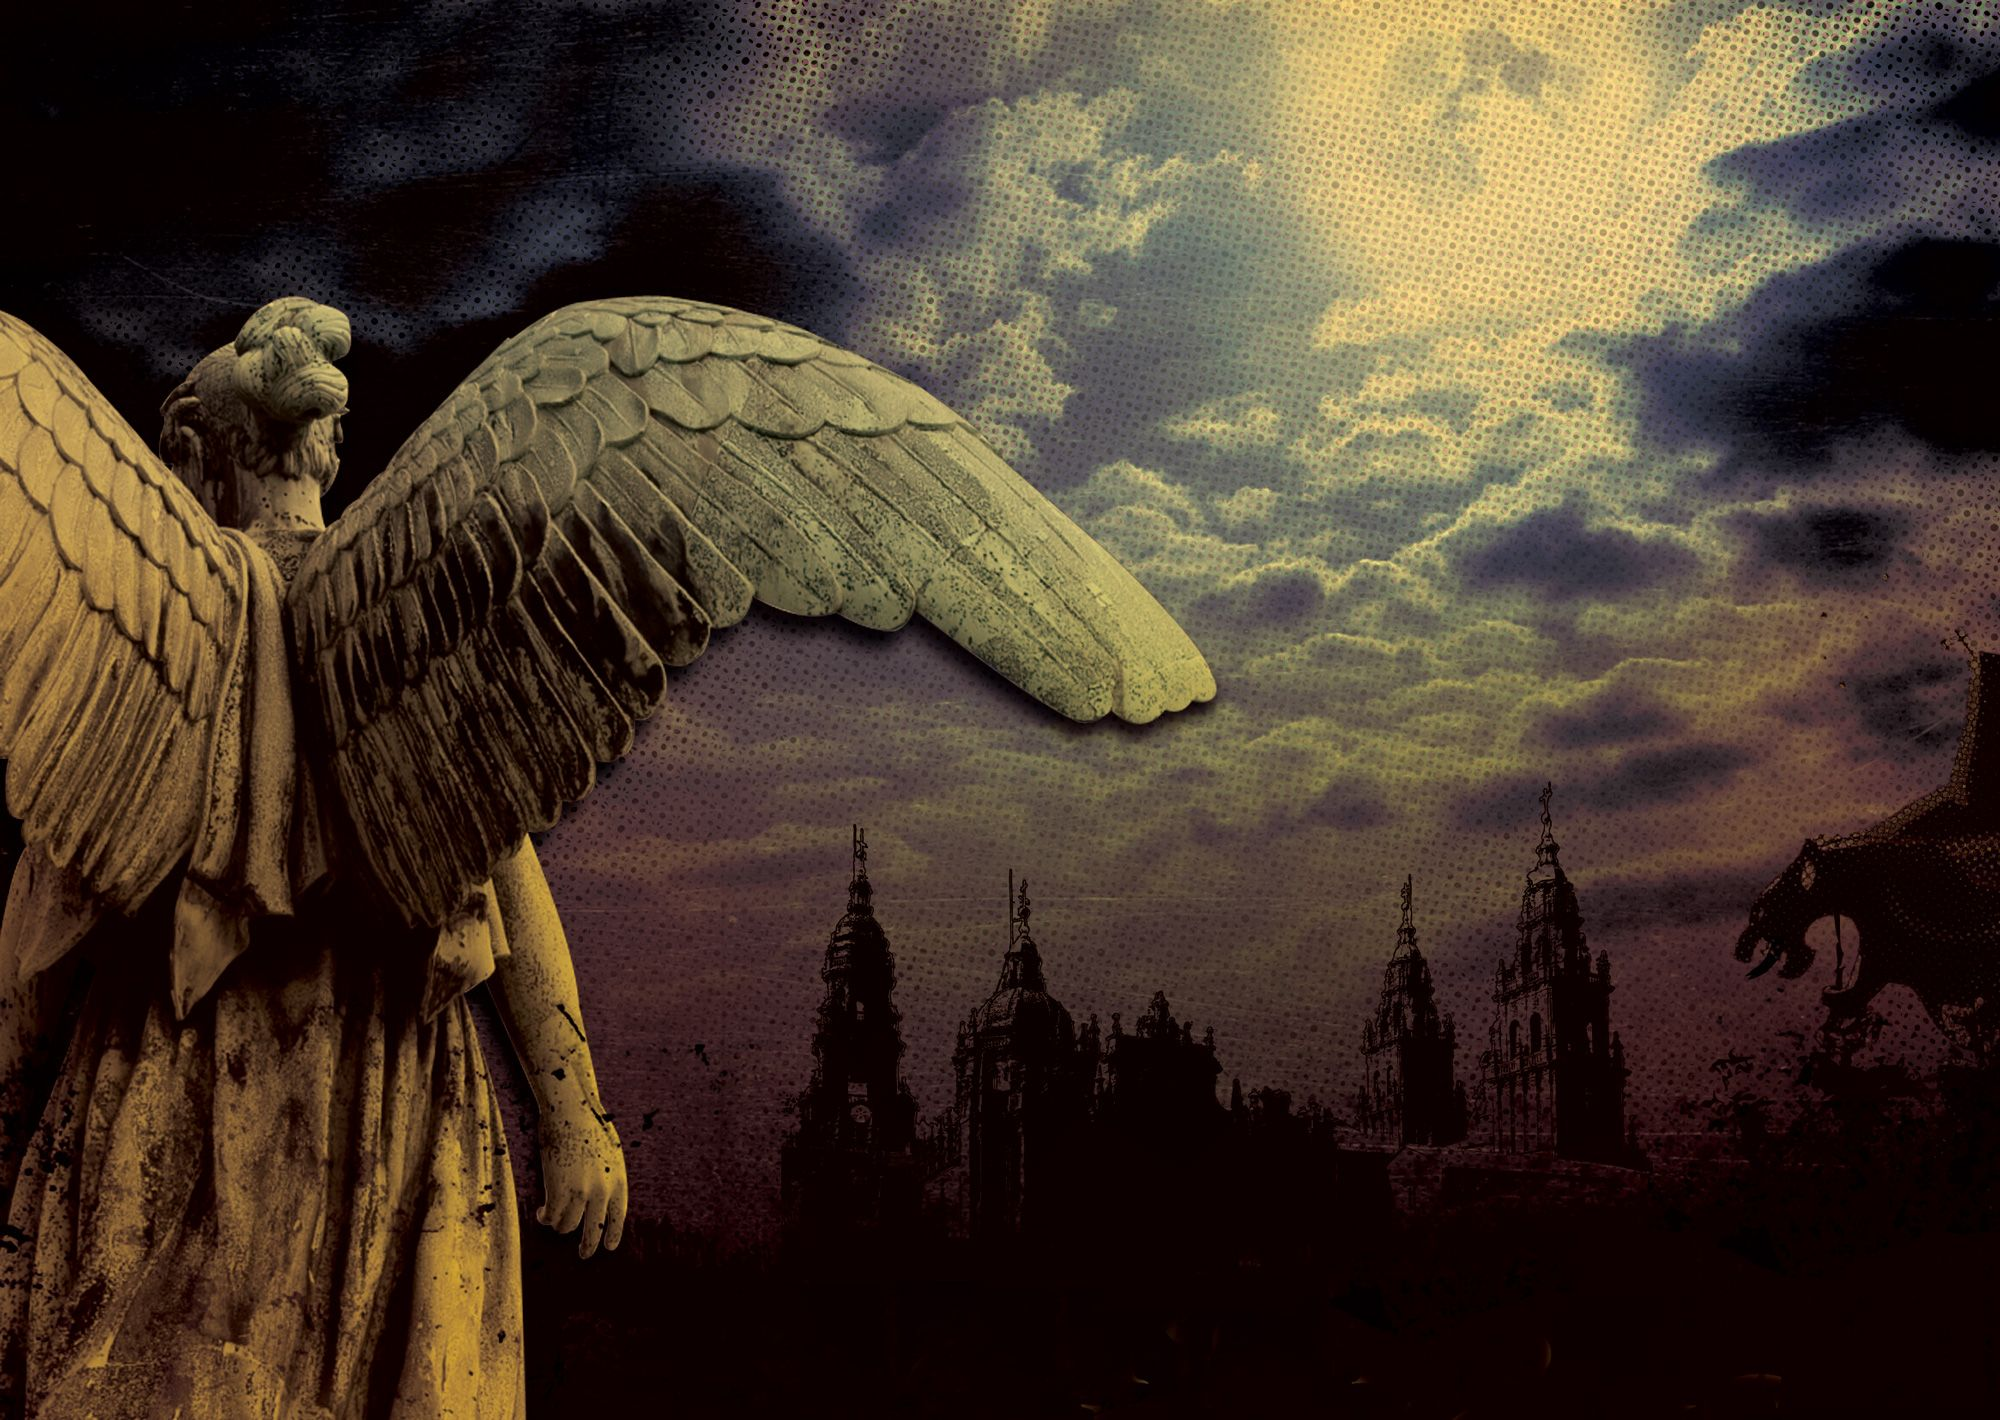 Why didn't God just destroy Satan and his angels?